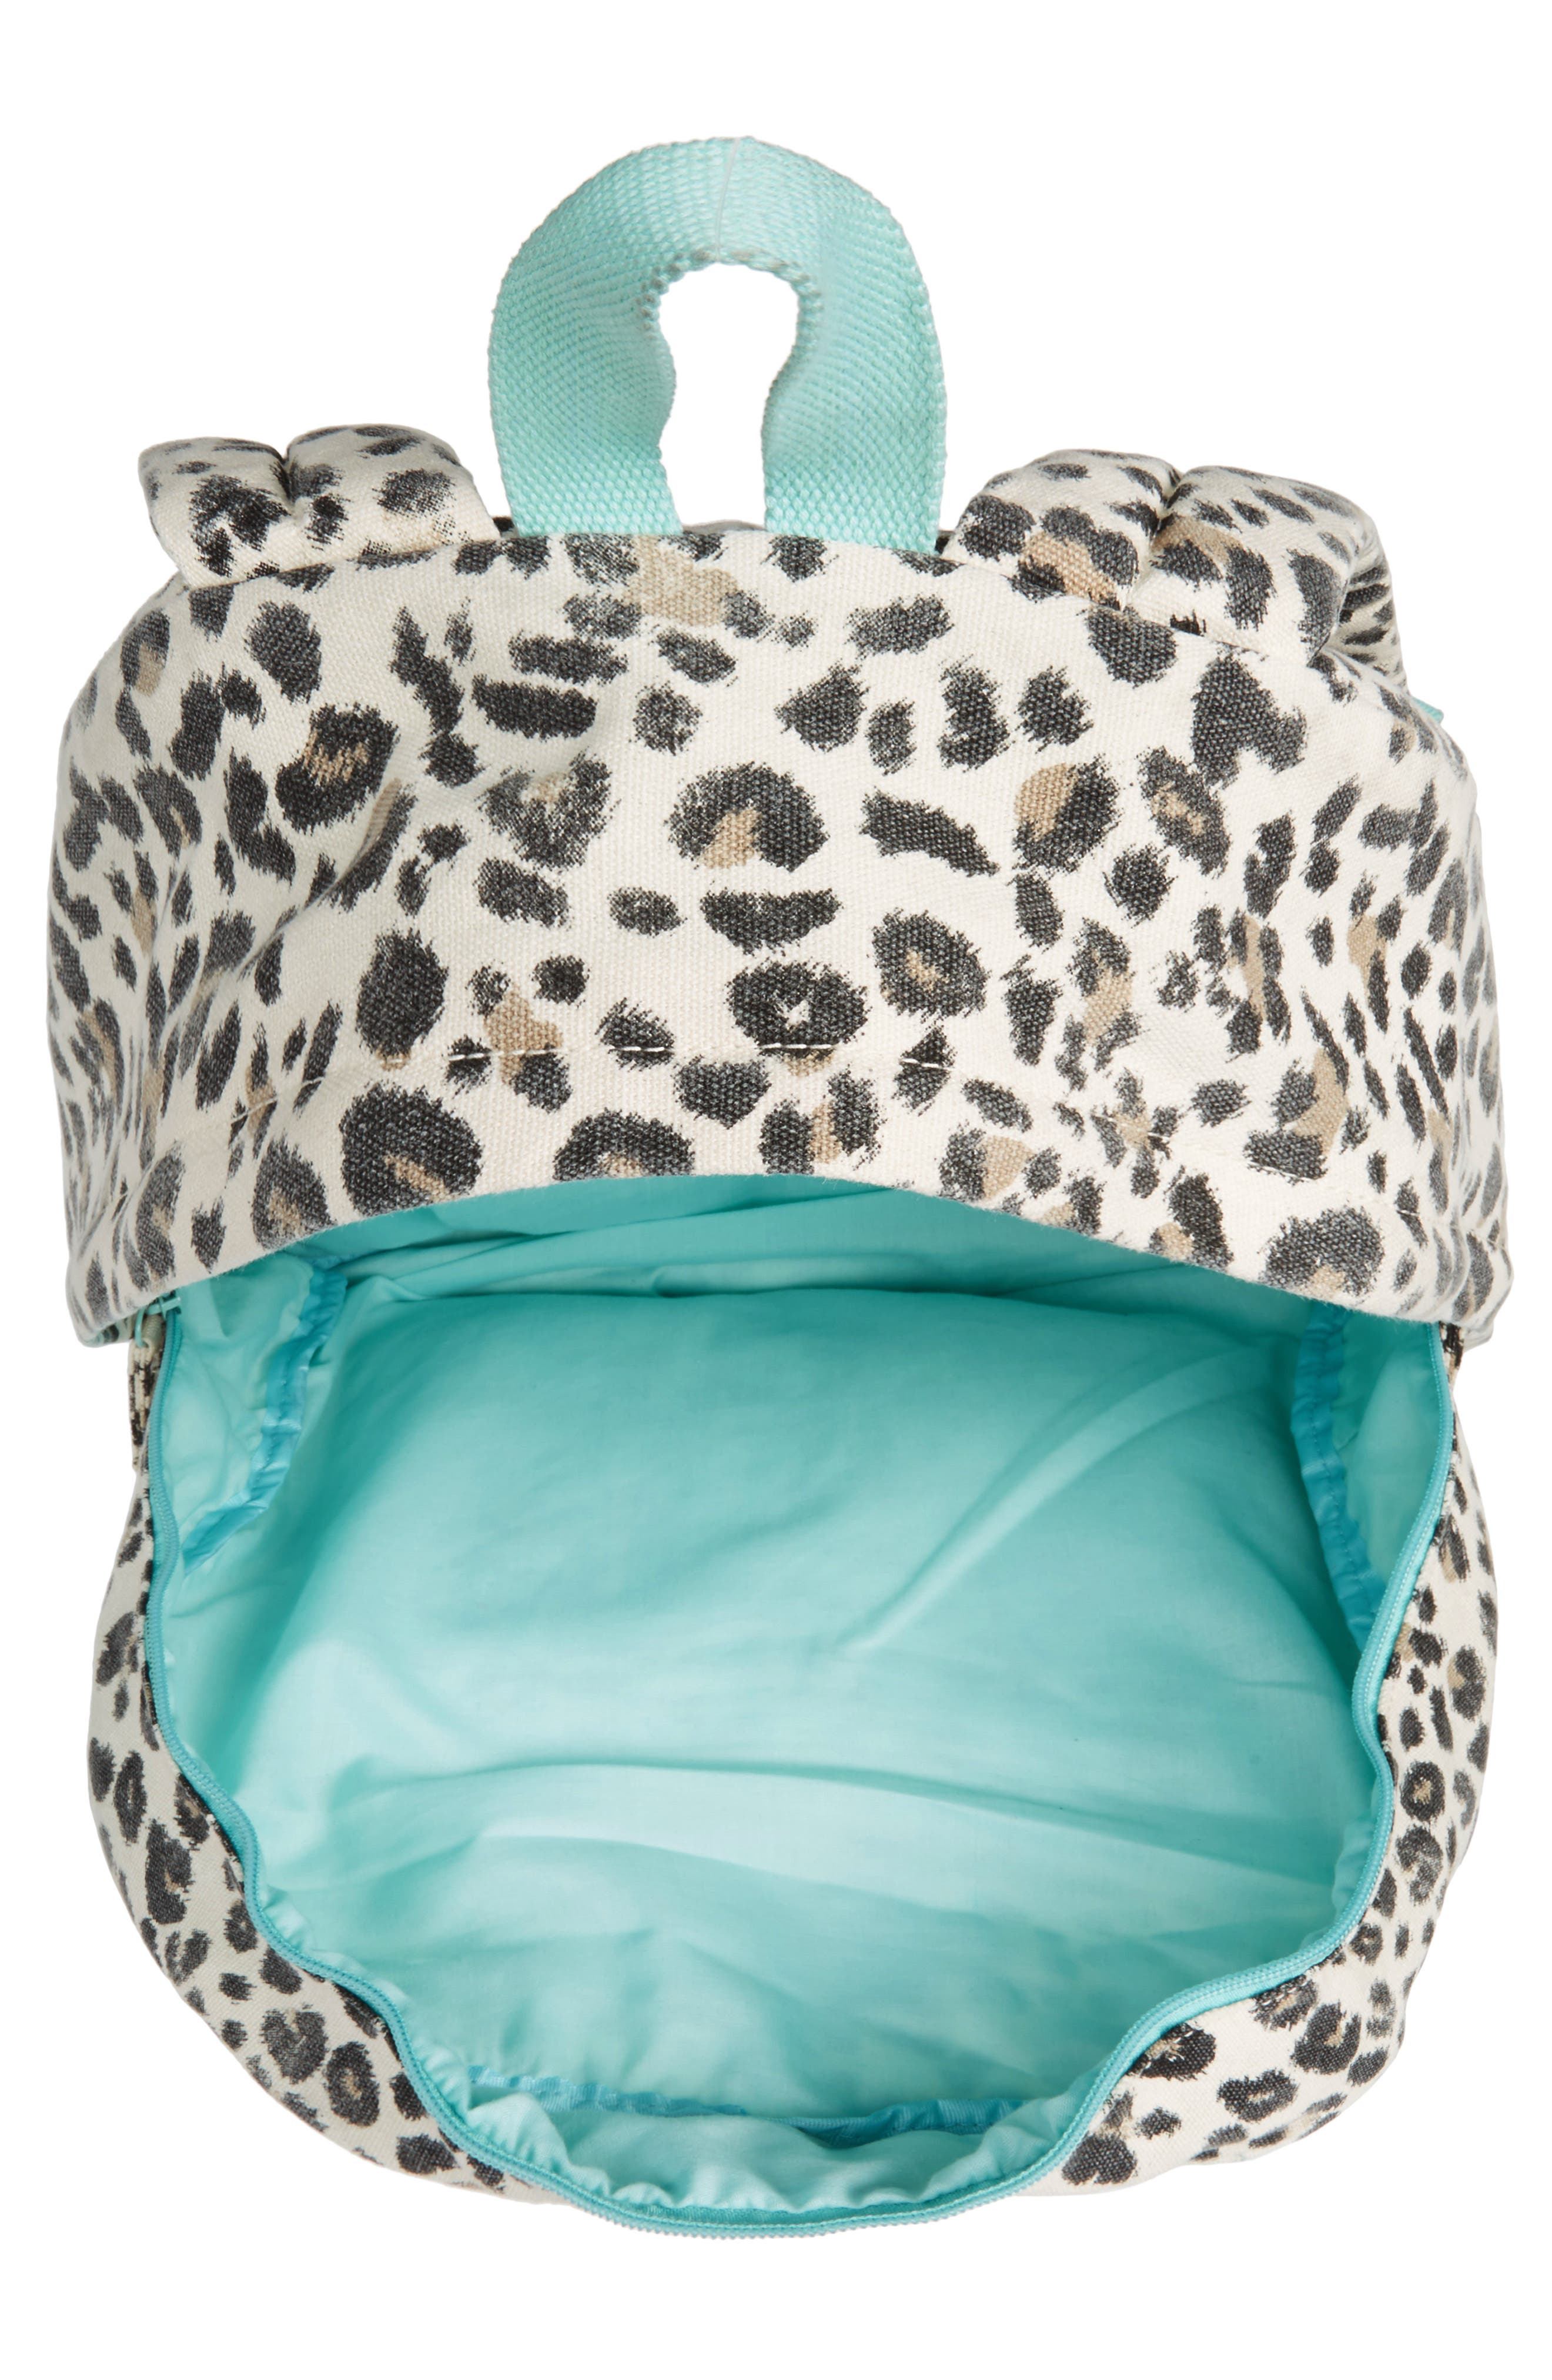 Play Date Canvas Backpack,                             Alternate thumbnail 3, color,                             004